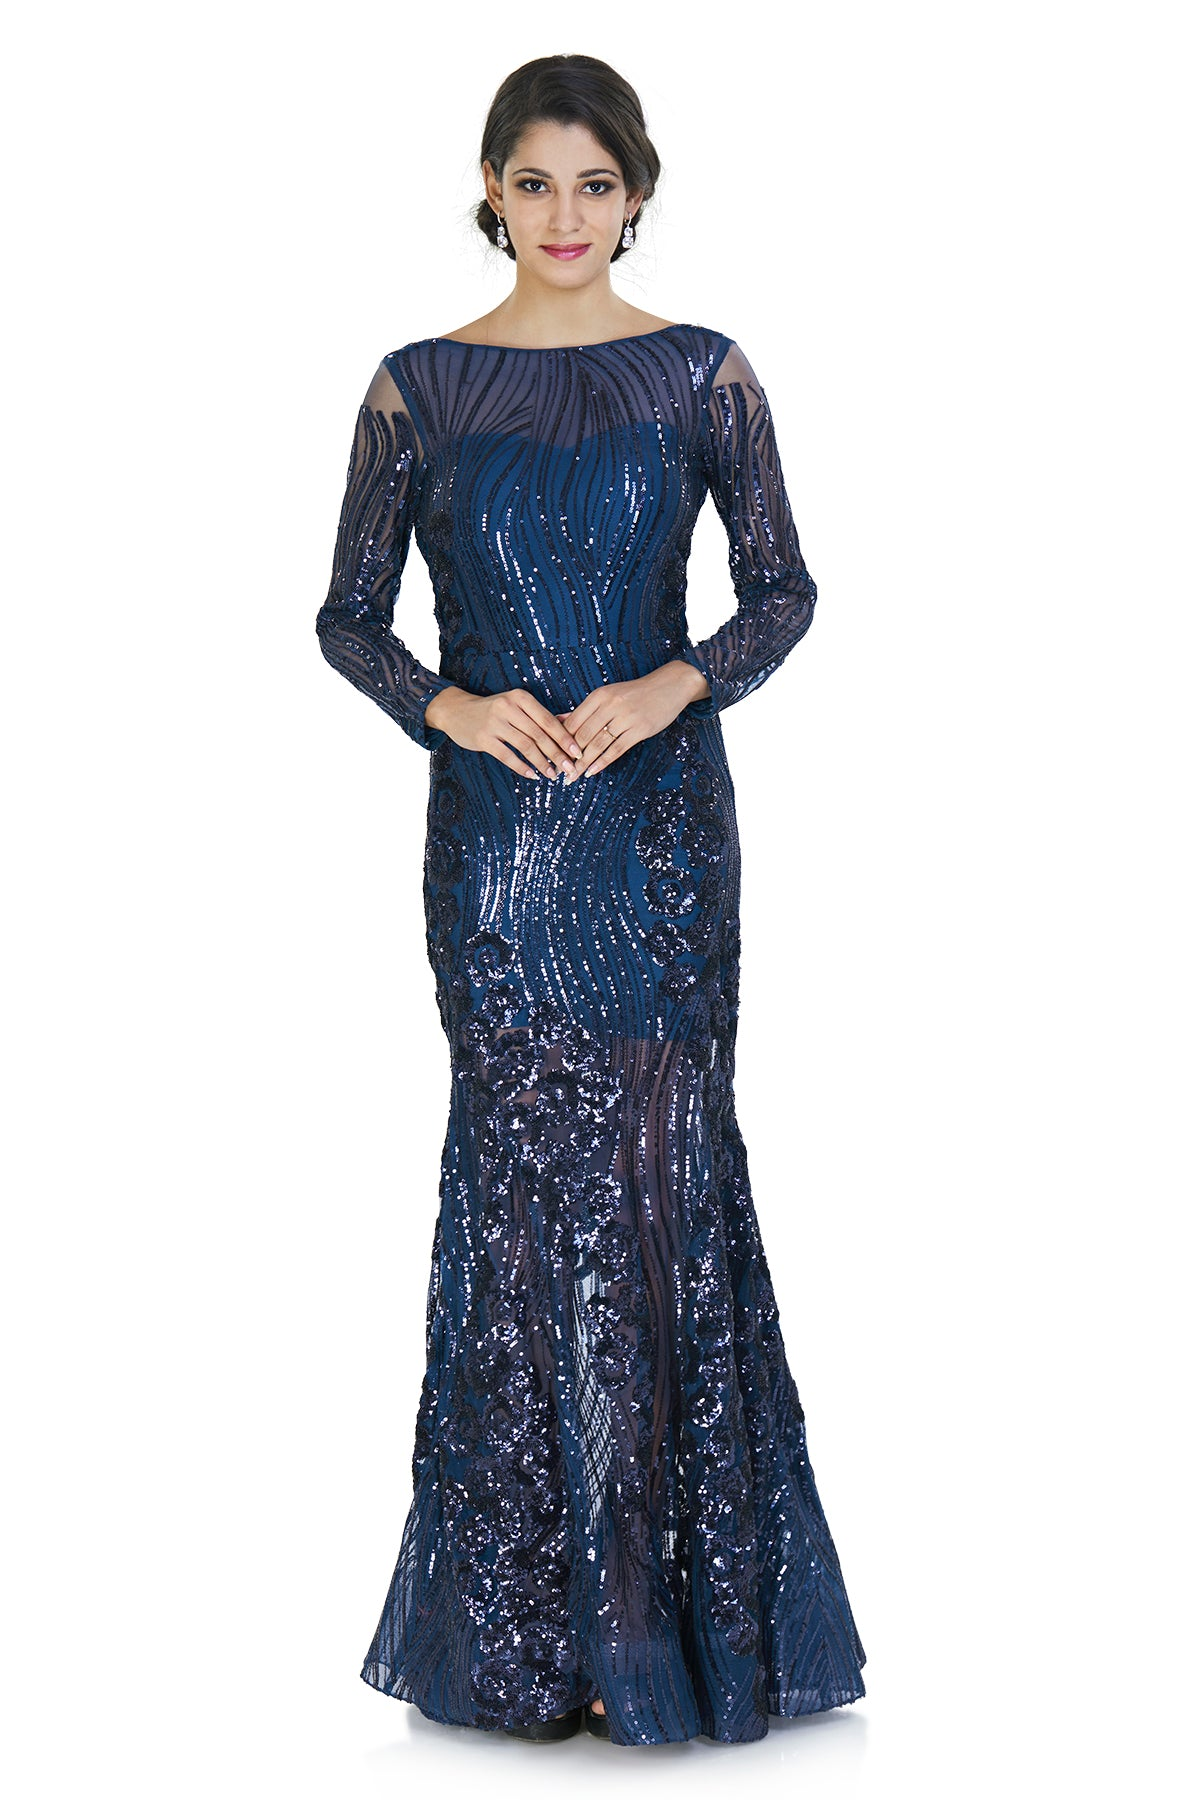 Feel like a mermaid in your next cocktail party in this mermaid shaped gown embellished with glitter & sequins from head to toe!